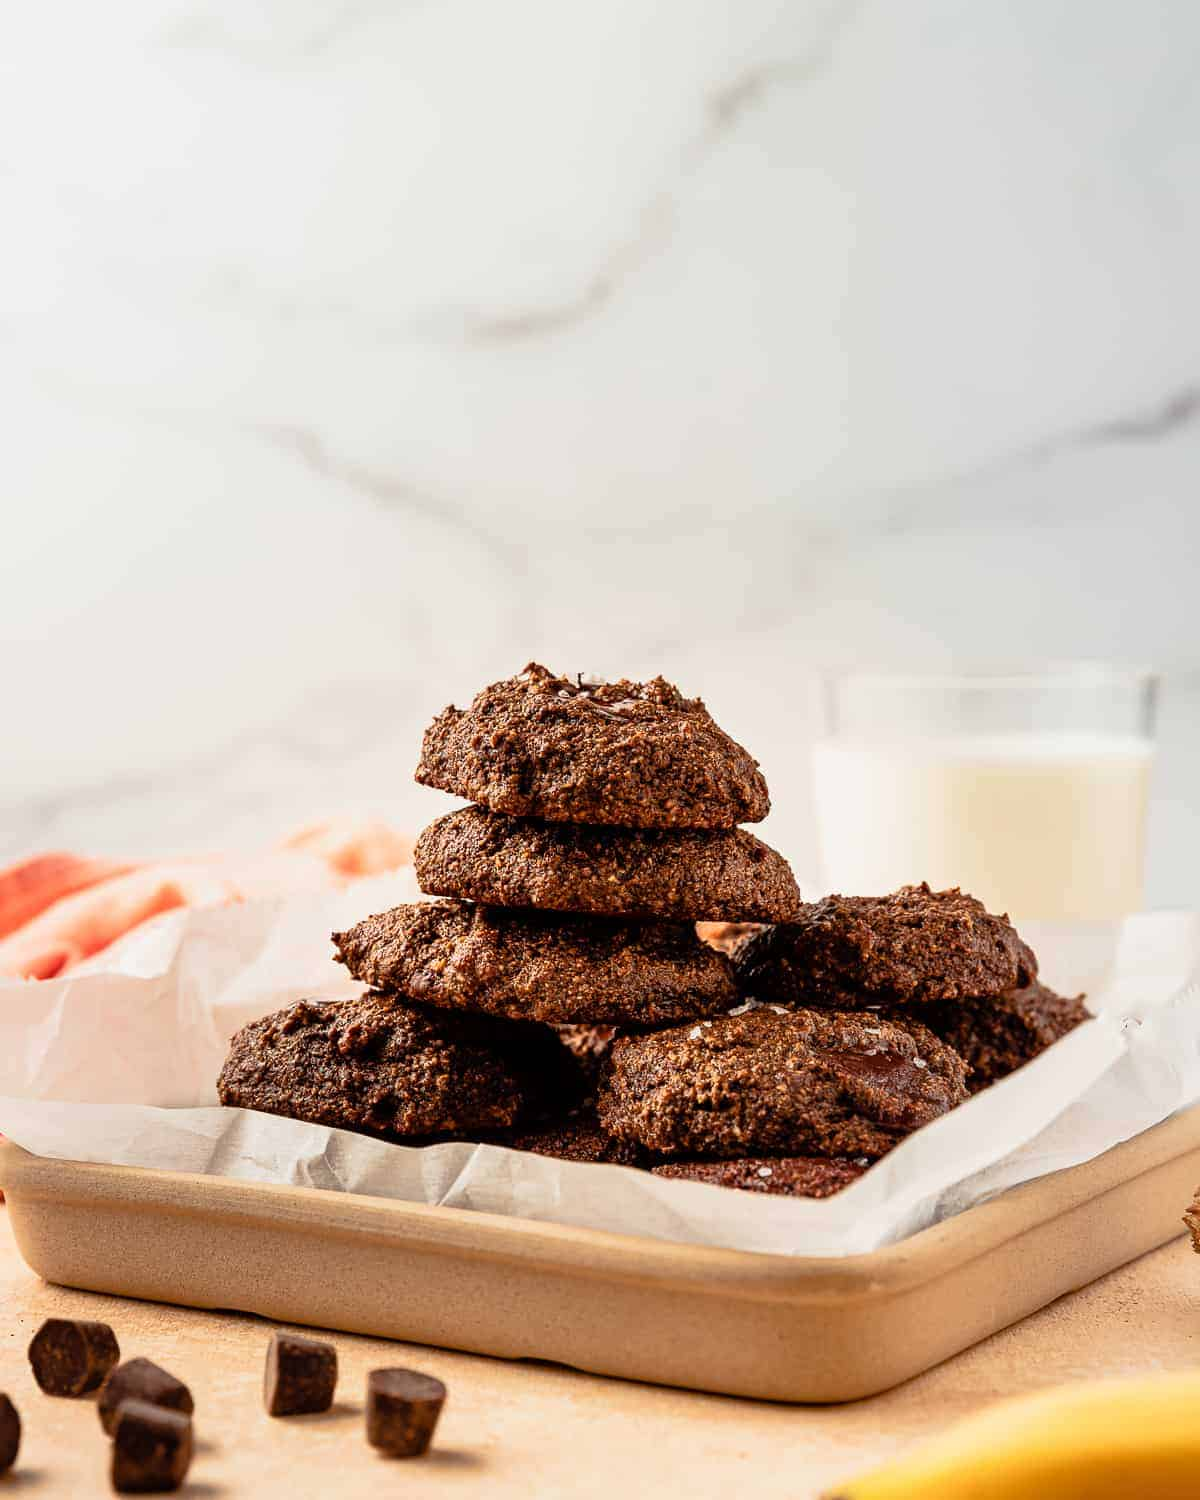 Chocolate Banana Cookies with a glass of milk